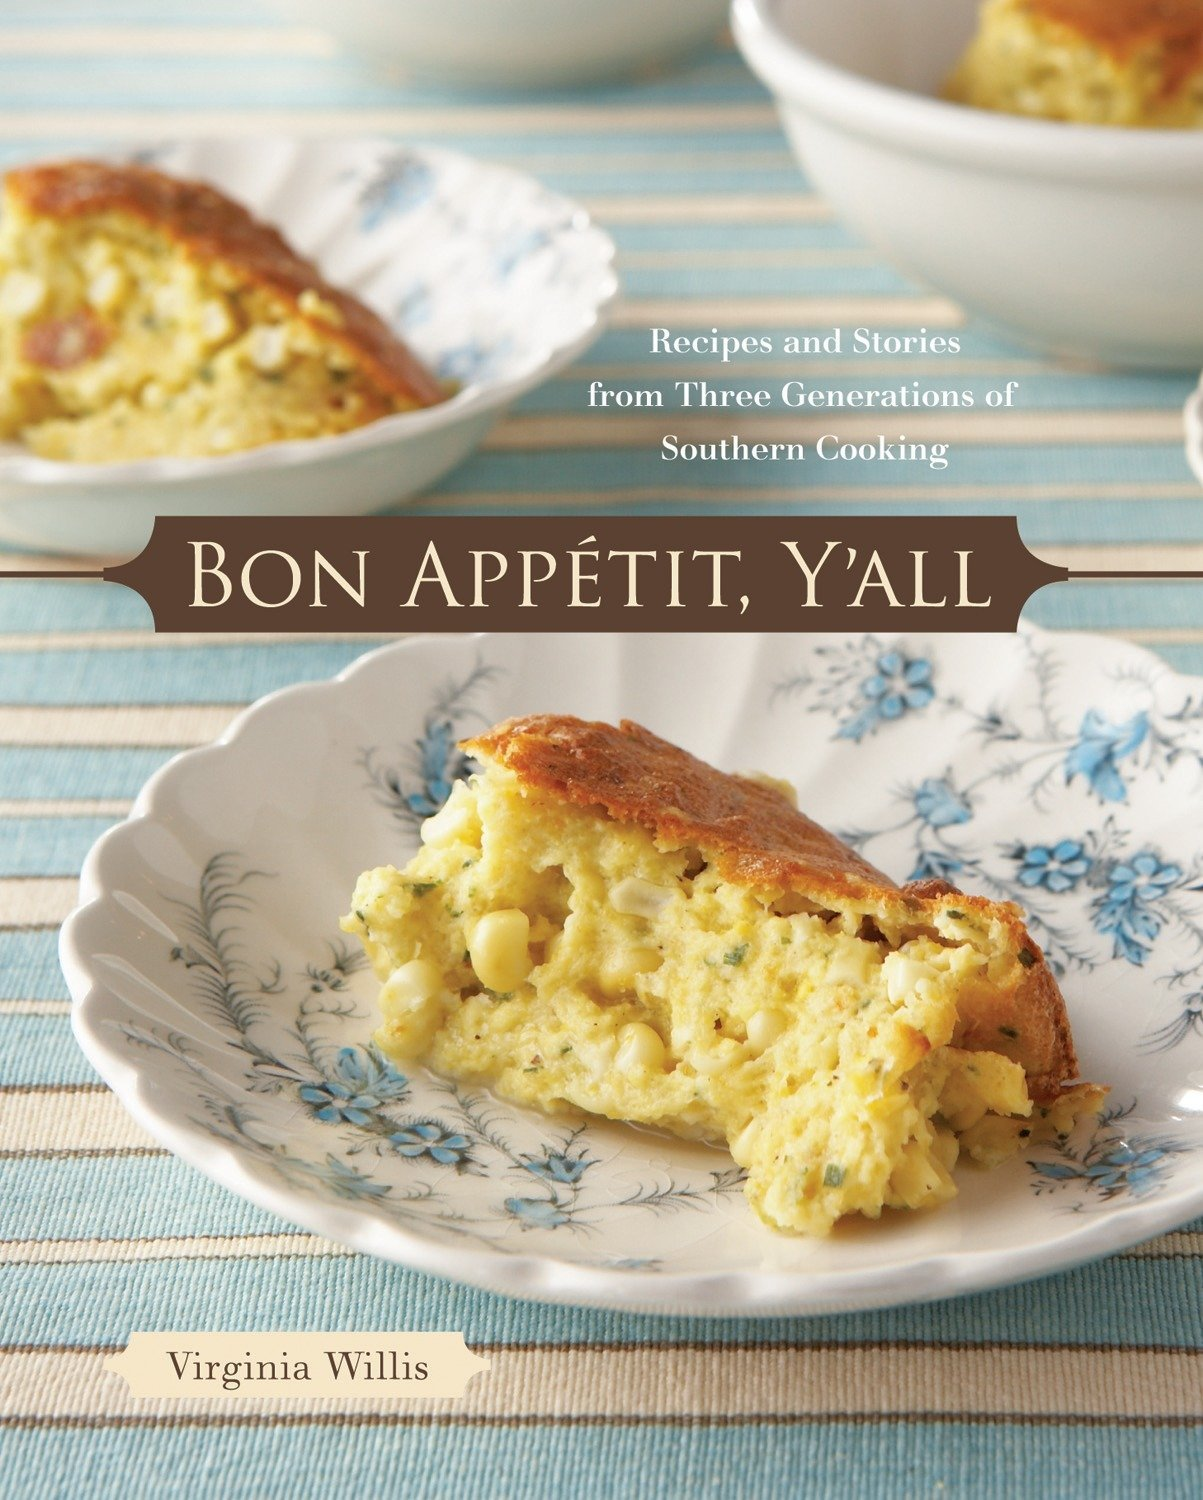 Bon Appetit, Y'all: Recipes and Stories from Three